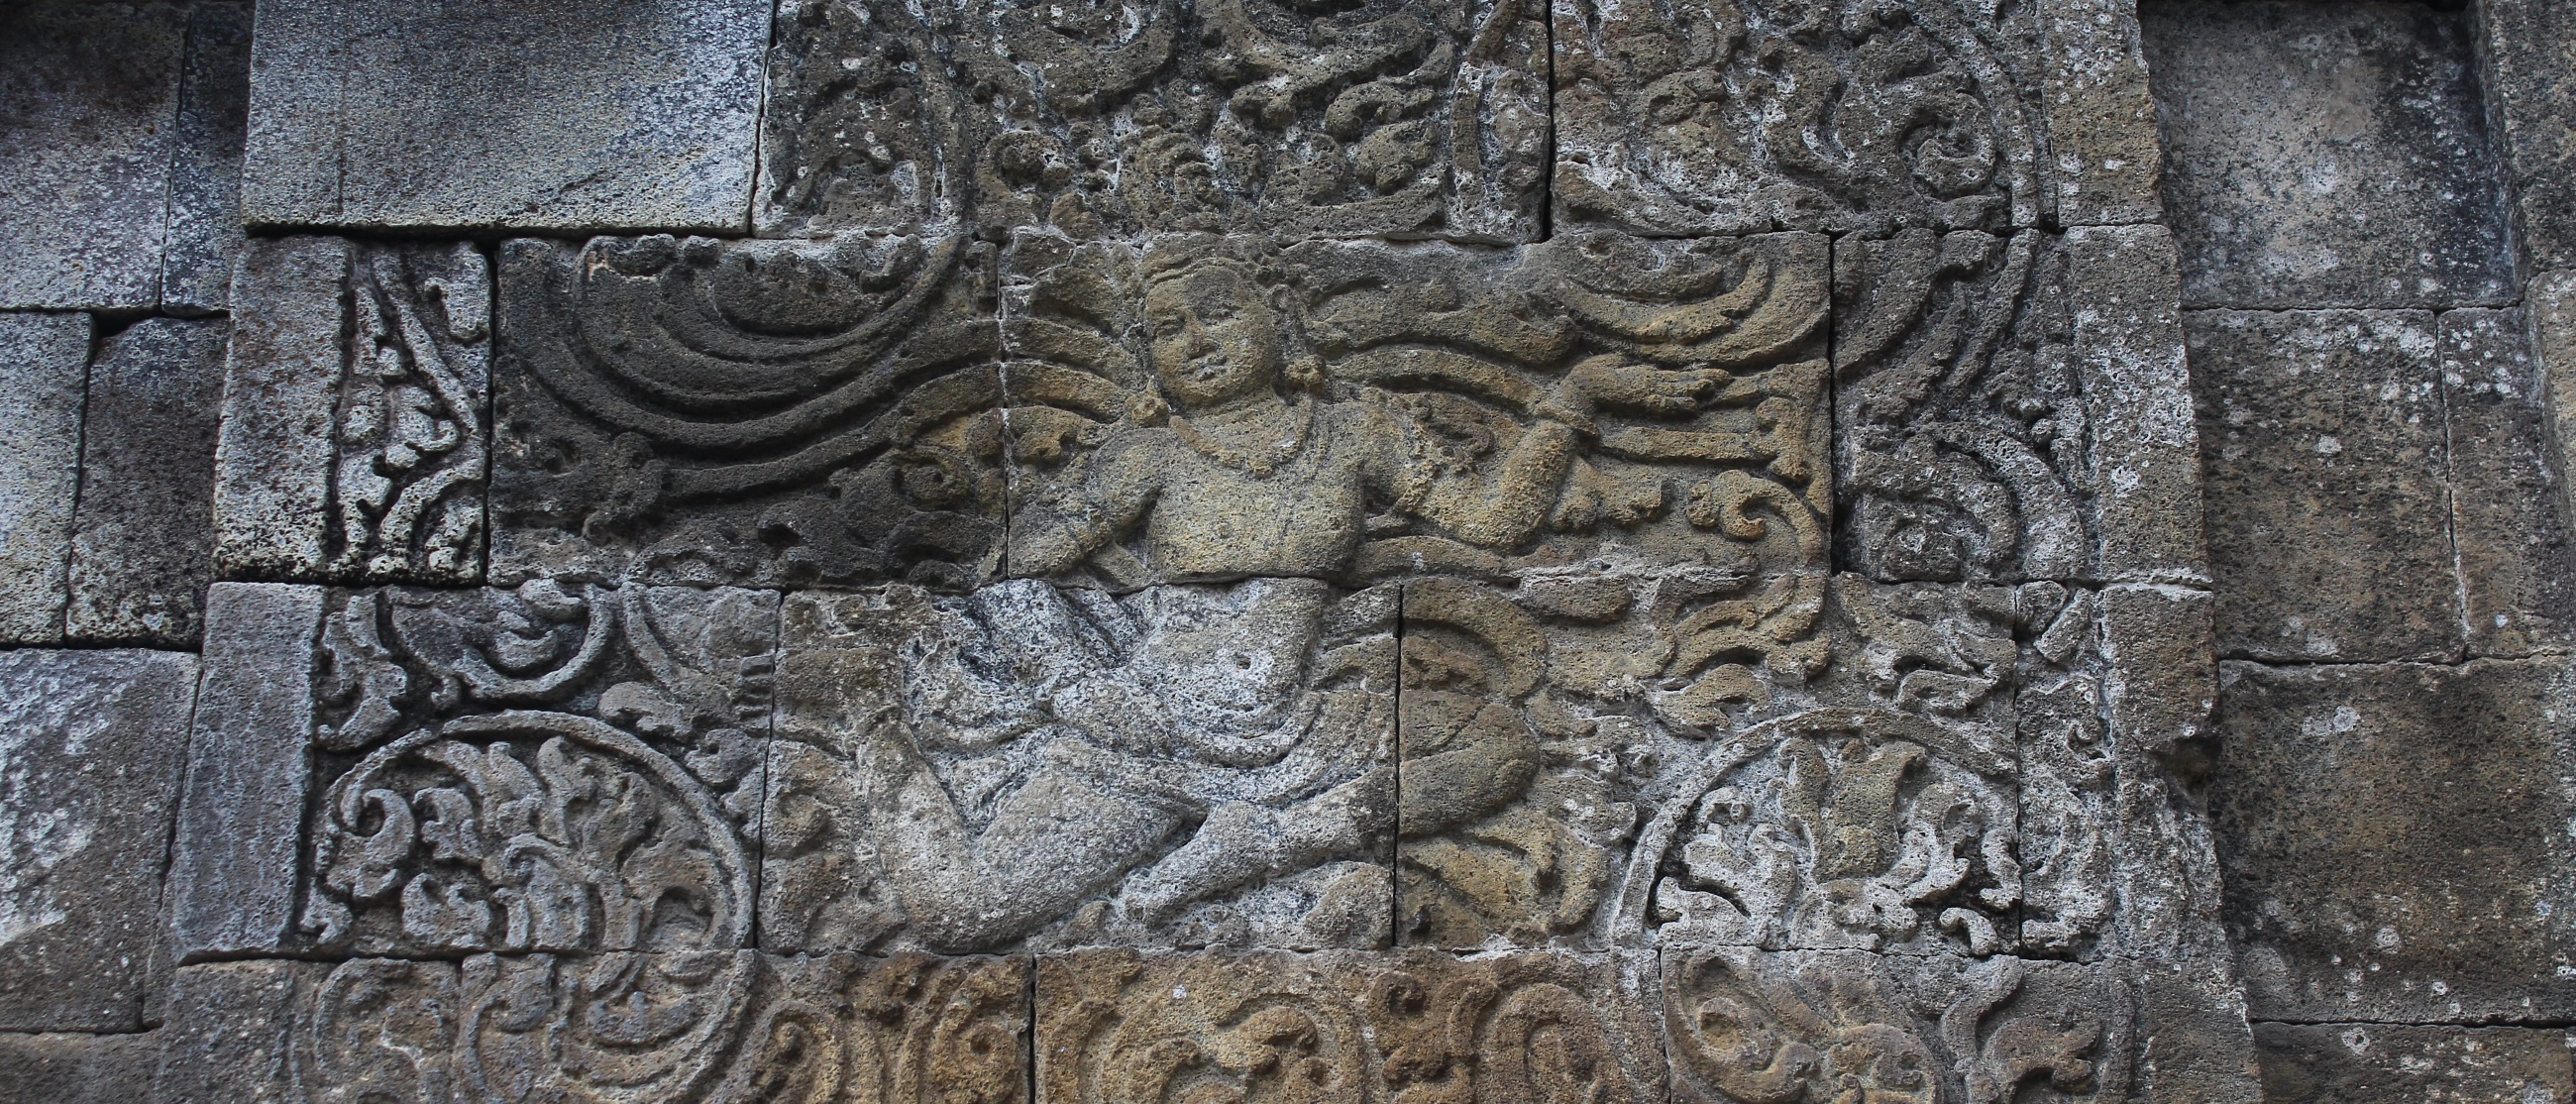 The relief carvings on Candi Mendut.